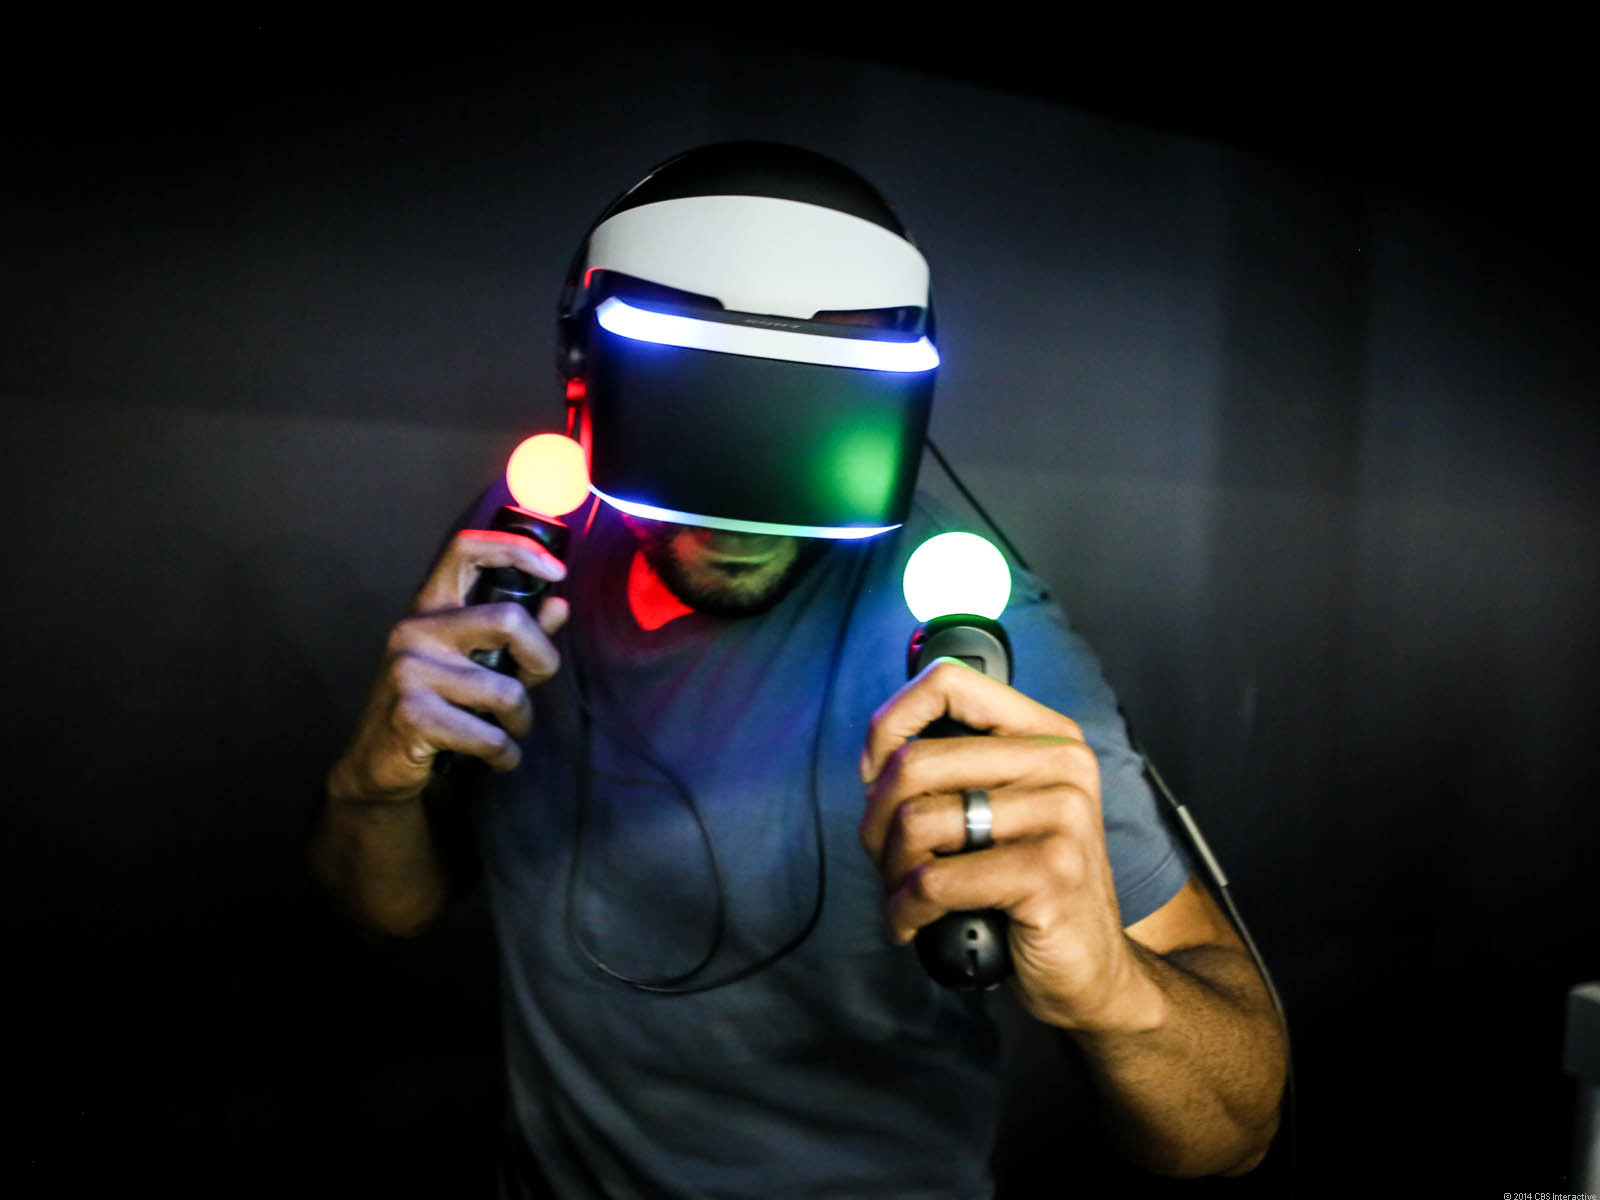 Project Morpheus by Sony